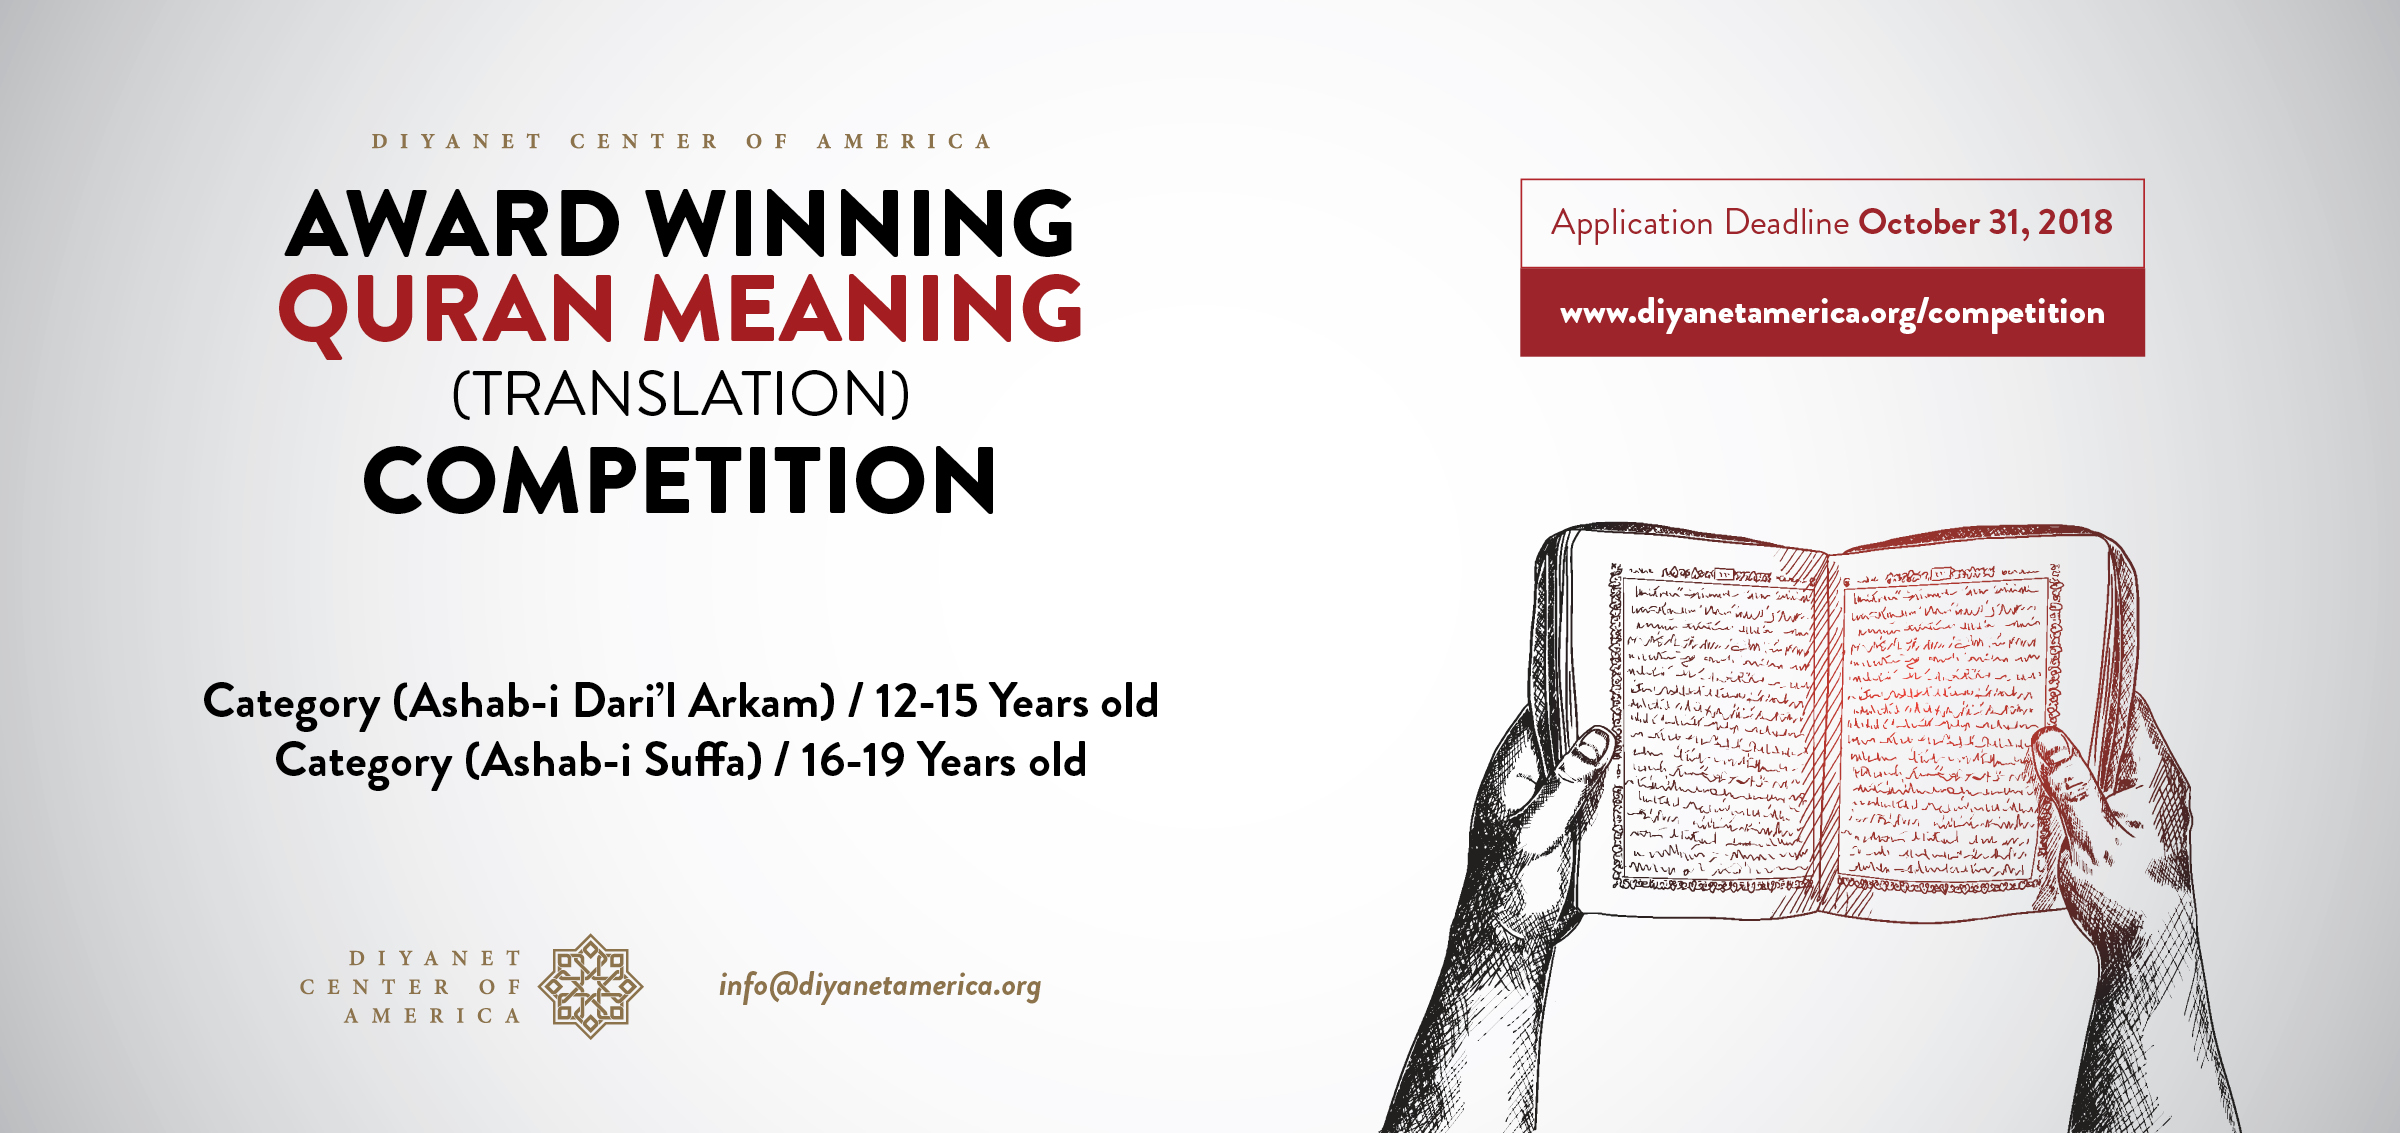 Award Winning Qur'an Meaning Competition